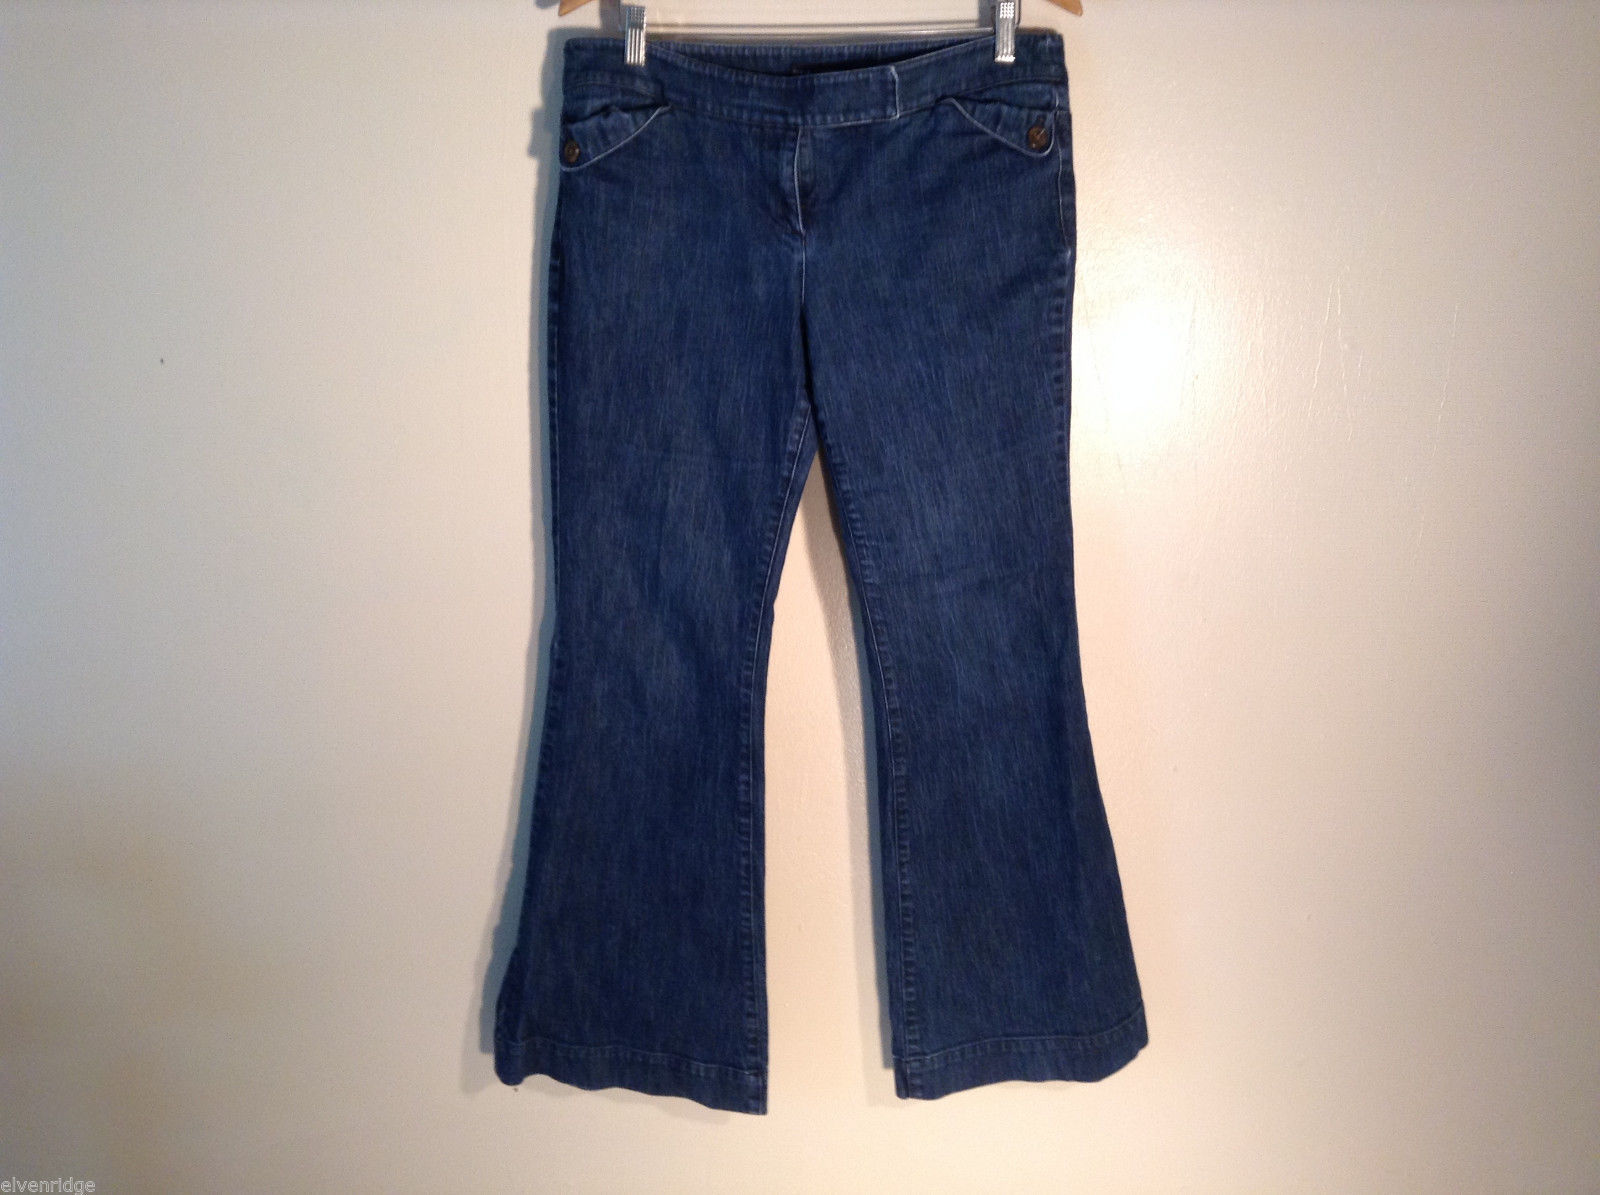 Womens NY & Co Blue Denim Jeans Size 12 98% cotton 2% spandex excellent